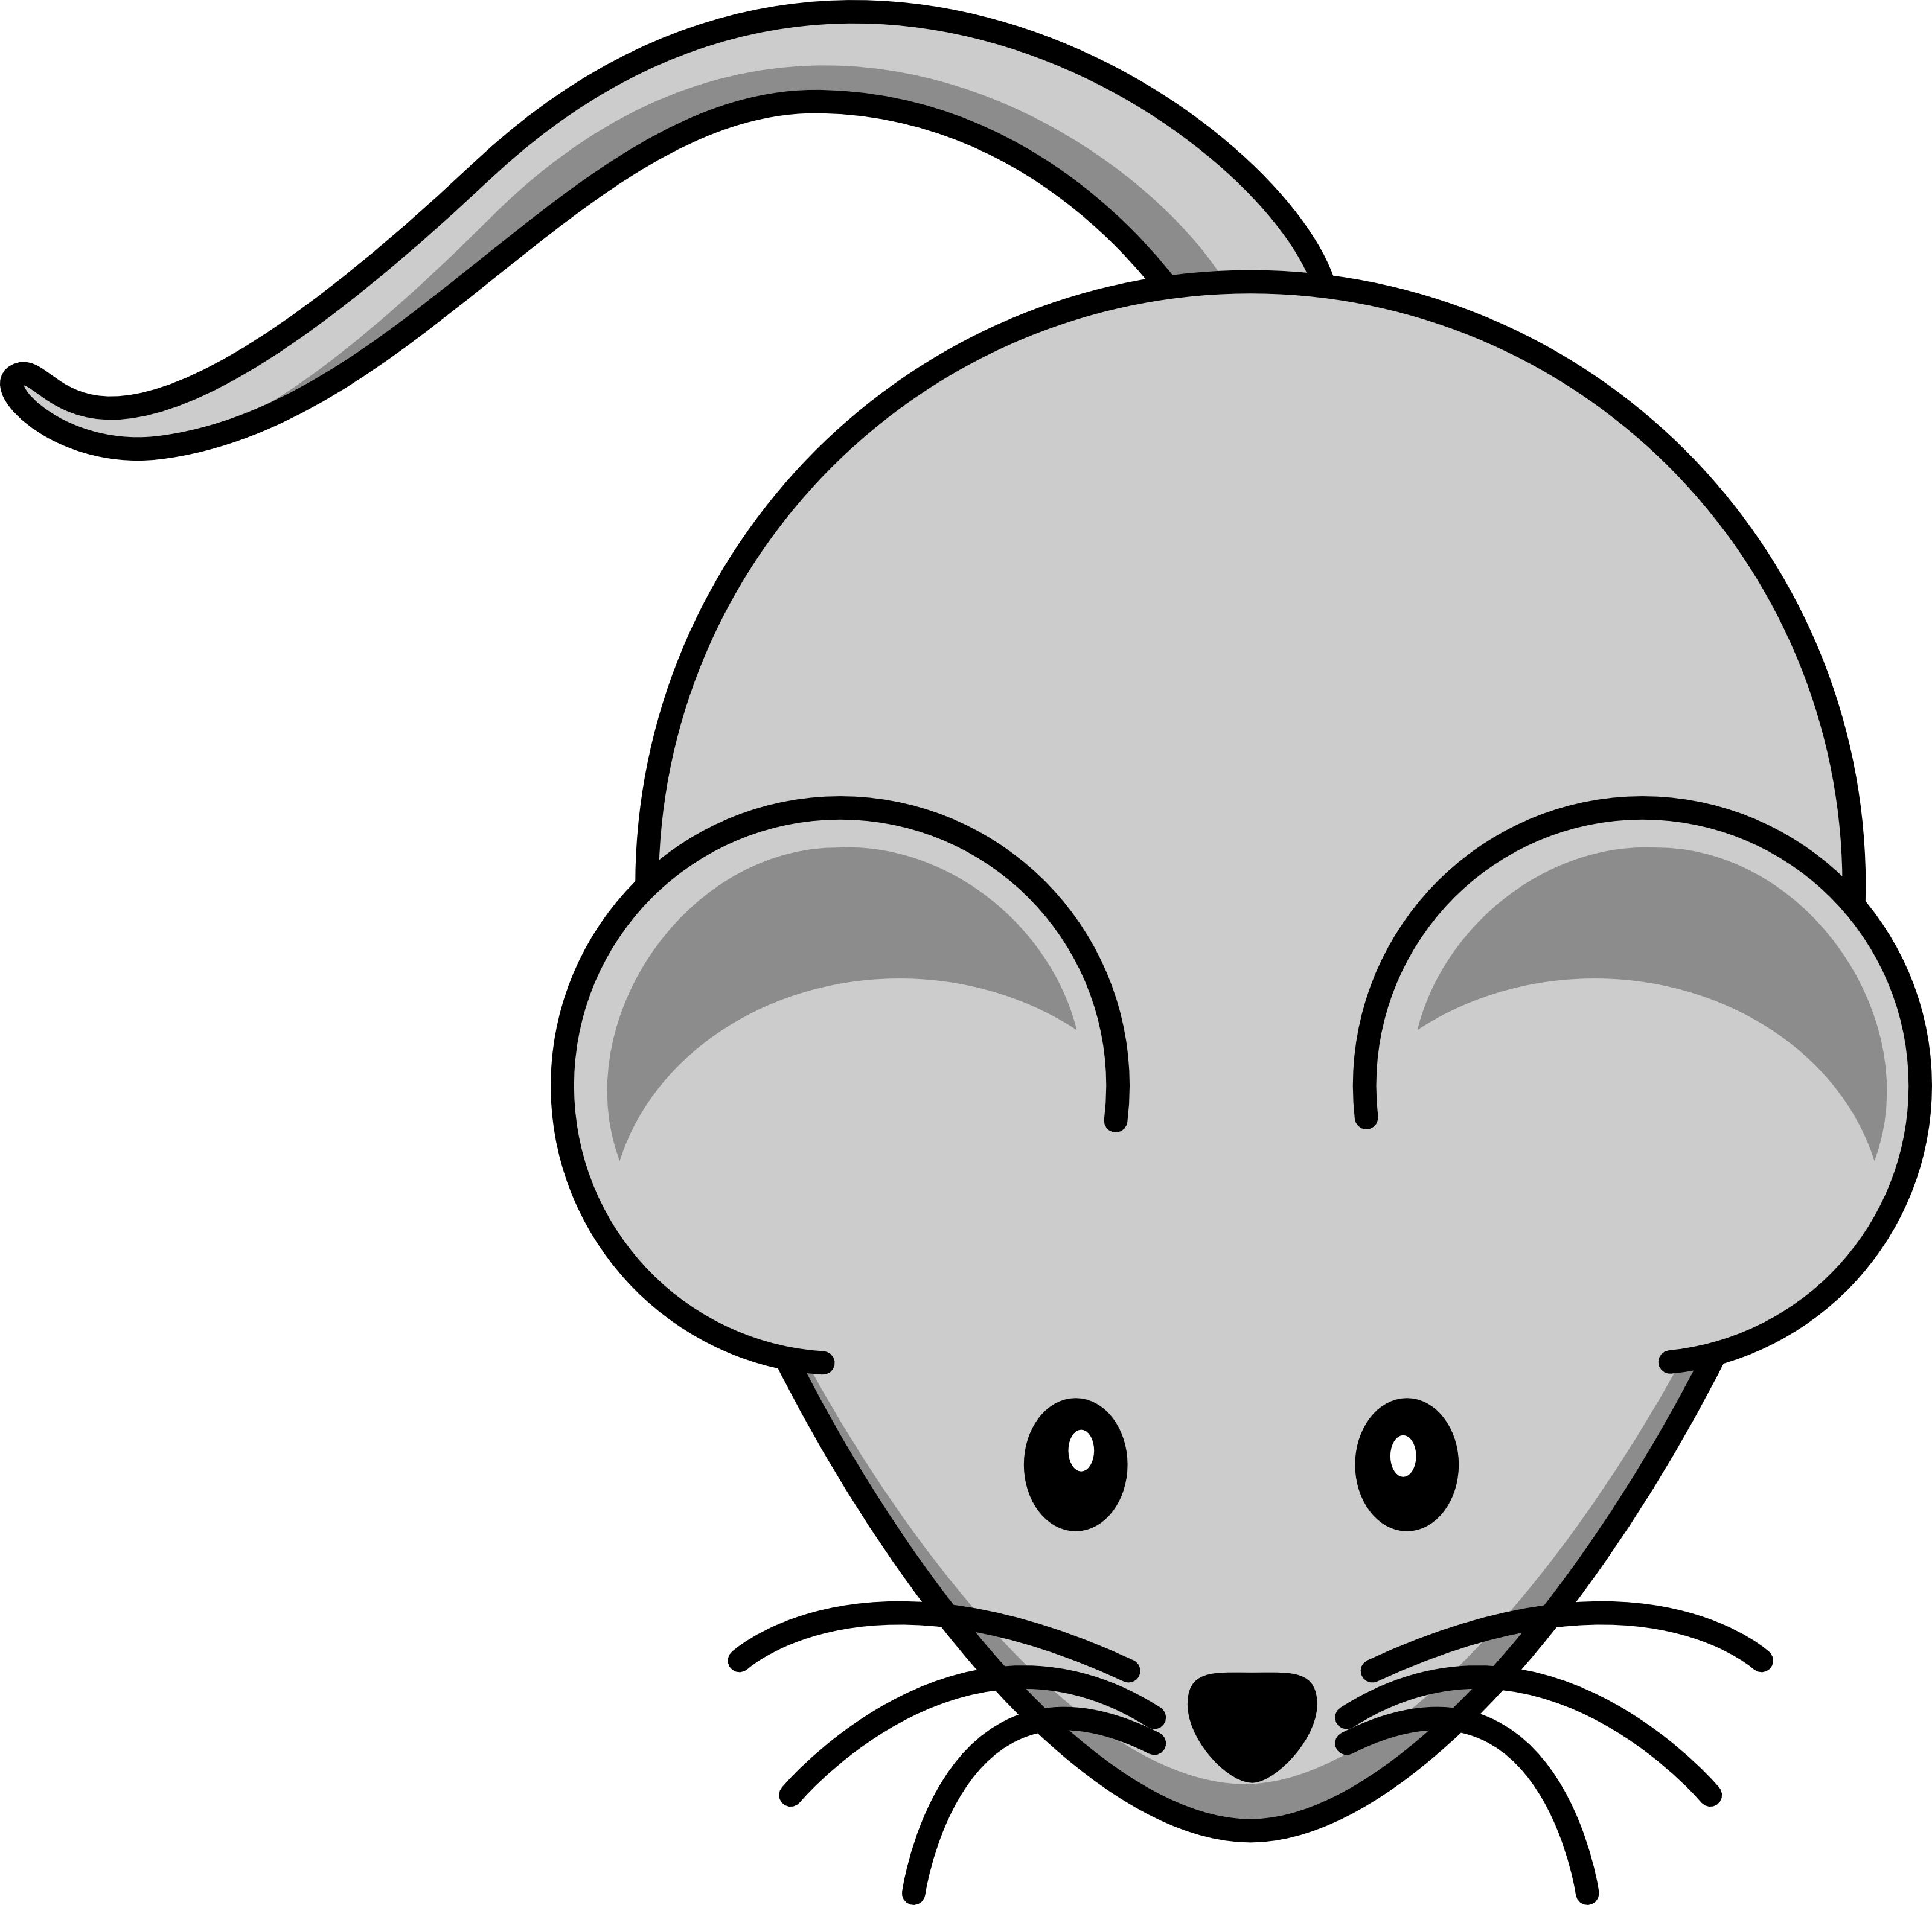 3200x3156 Computer Mouse Clipart Black And White Free 4